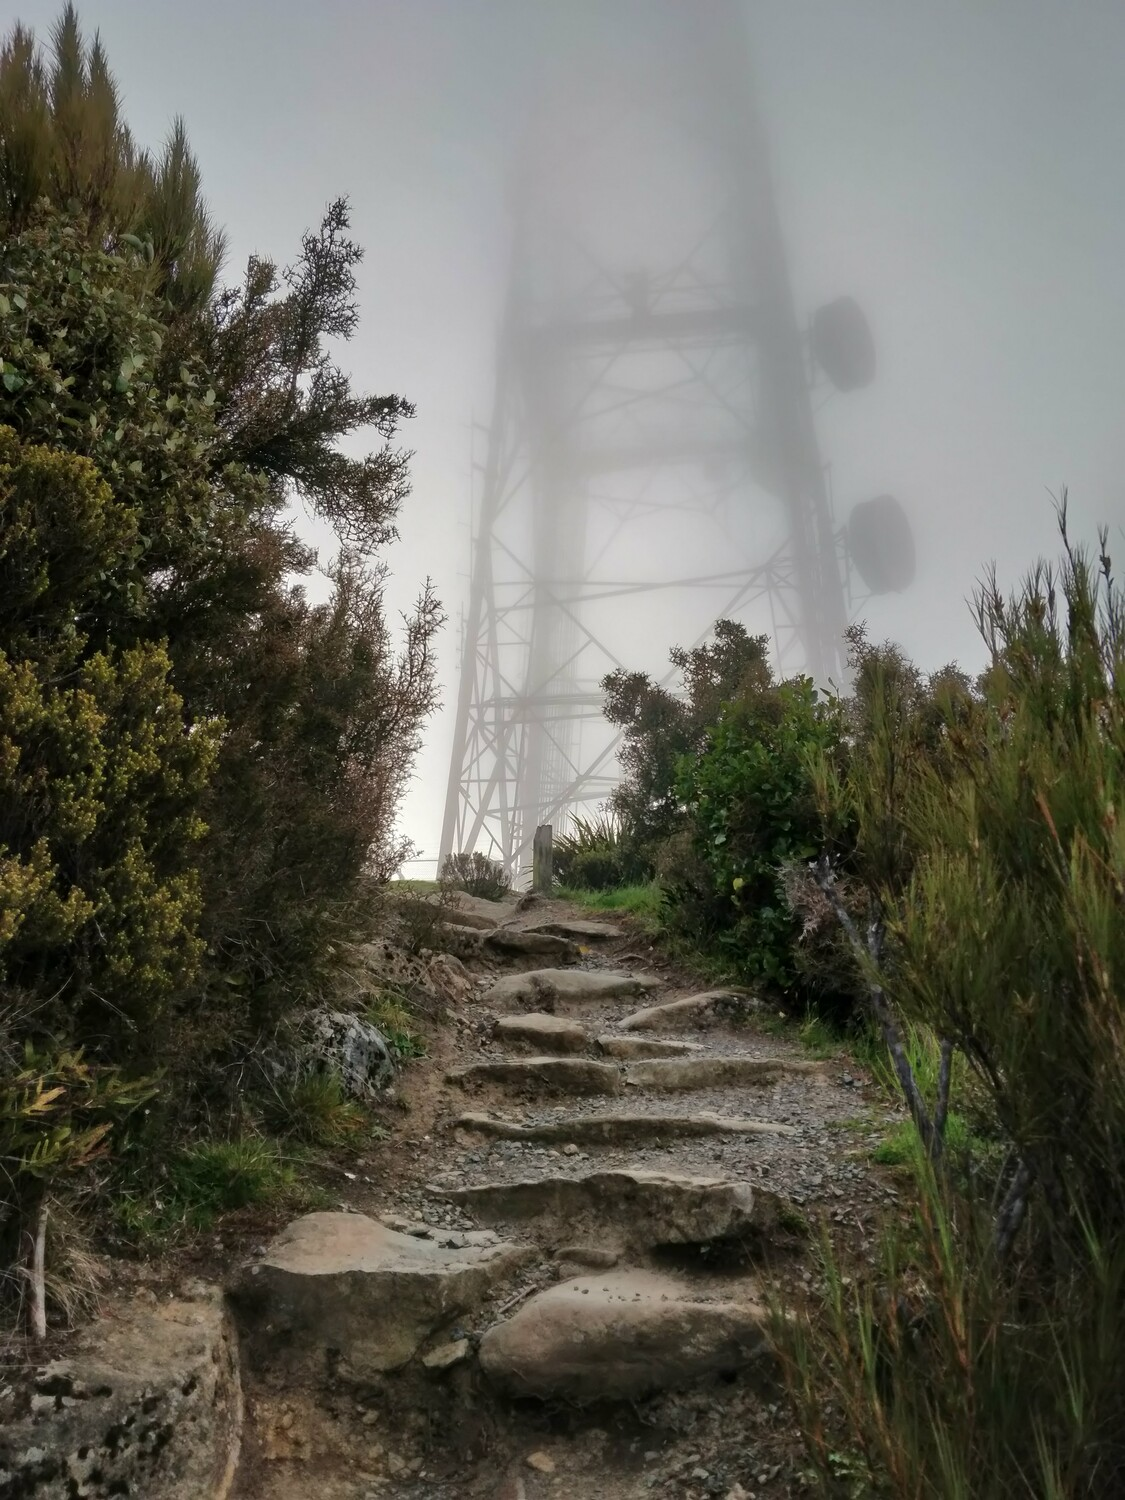 The path leads up a final set of stone steps, with the transmission tower a short distance away. The fog is so thick that the tower fades into mist, its midpoint being almost indistinguishable from the sky.